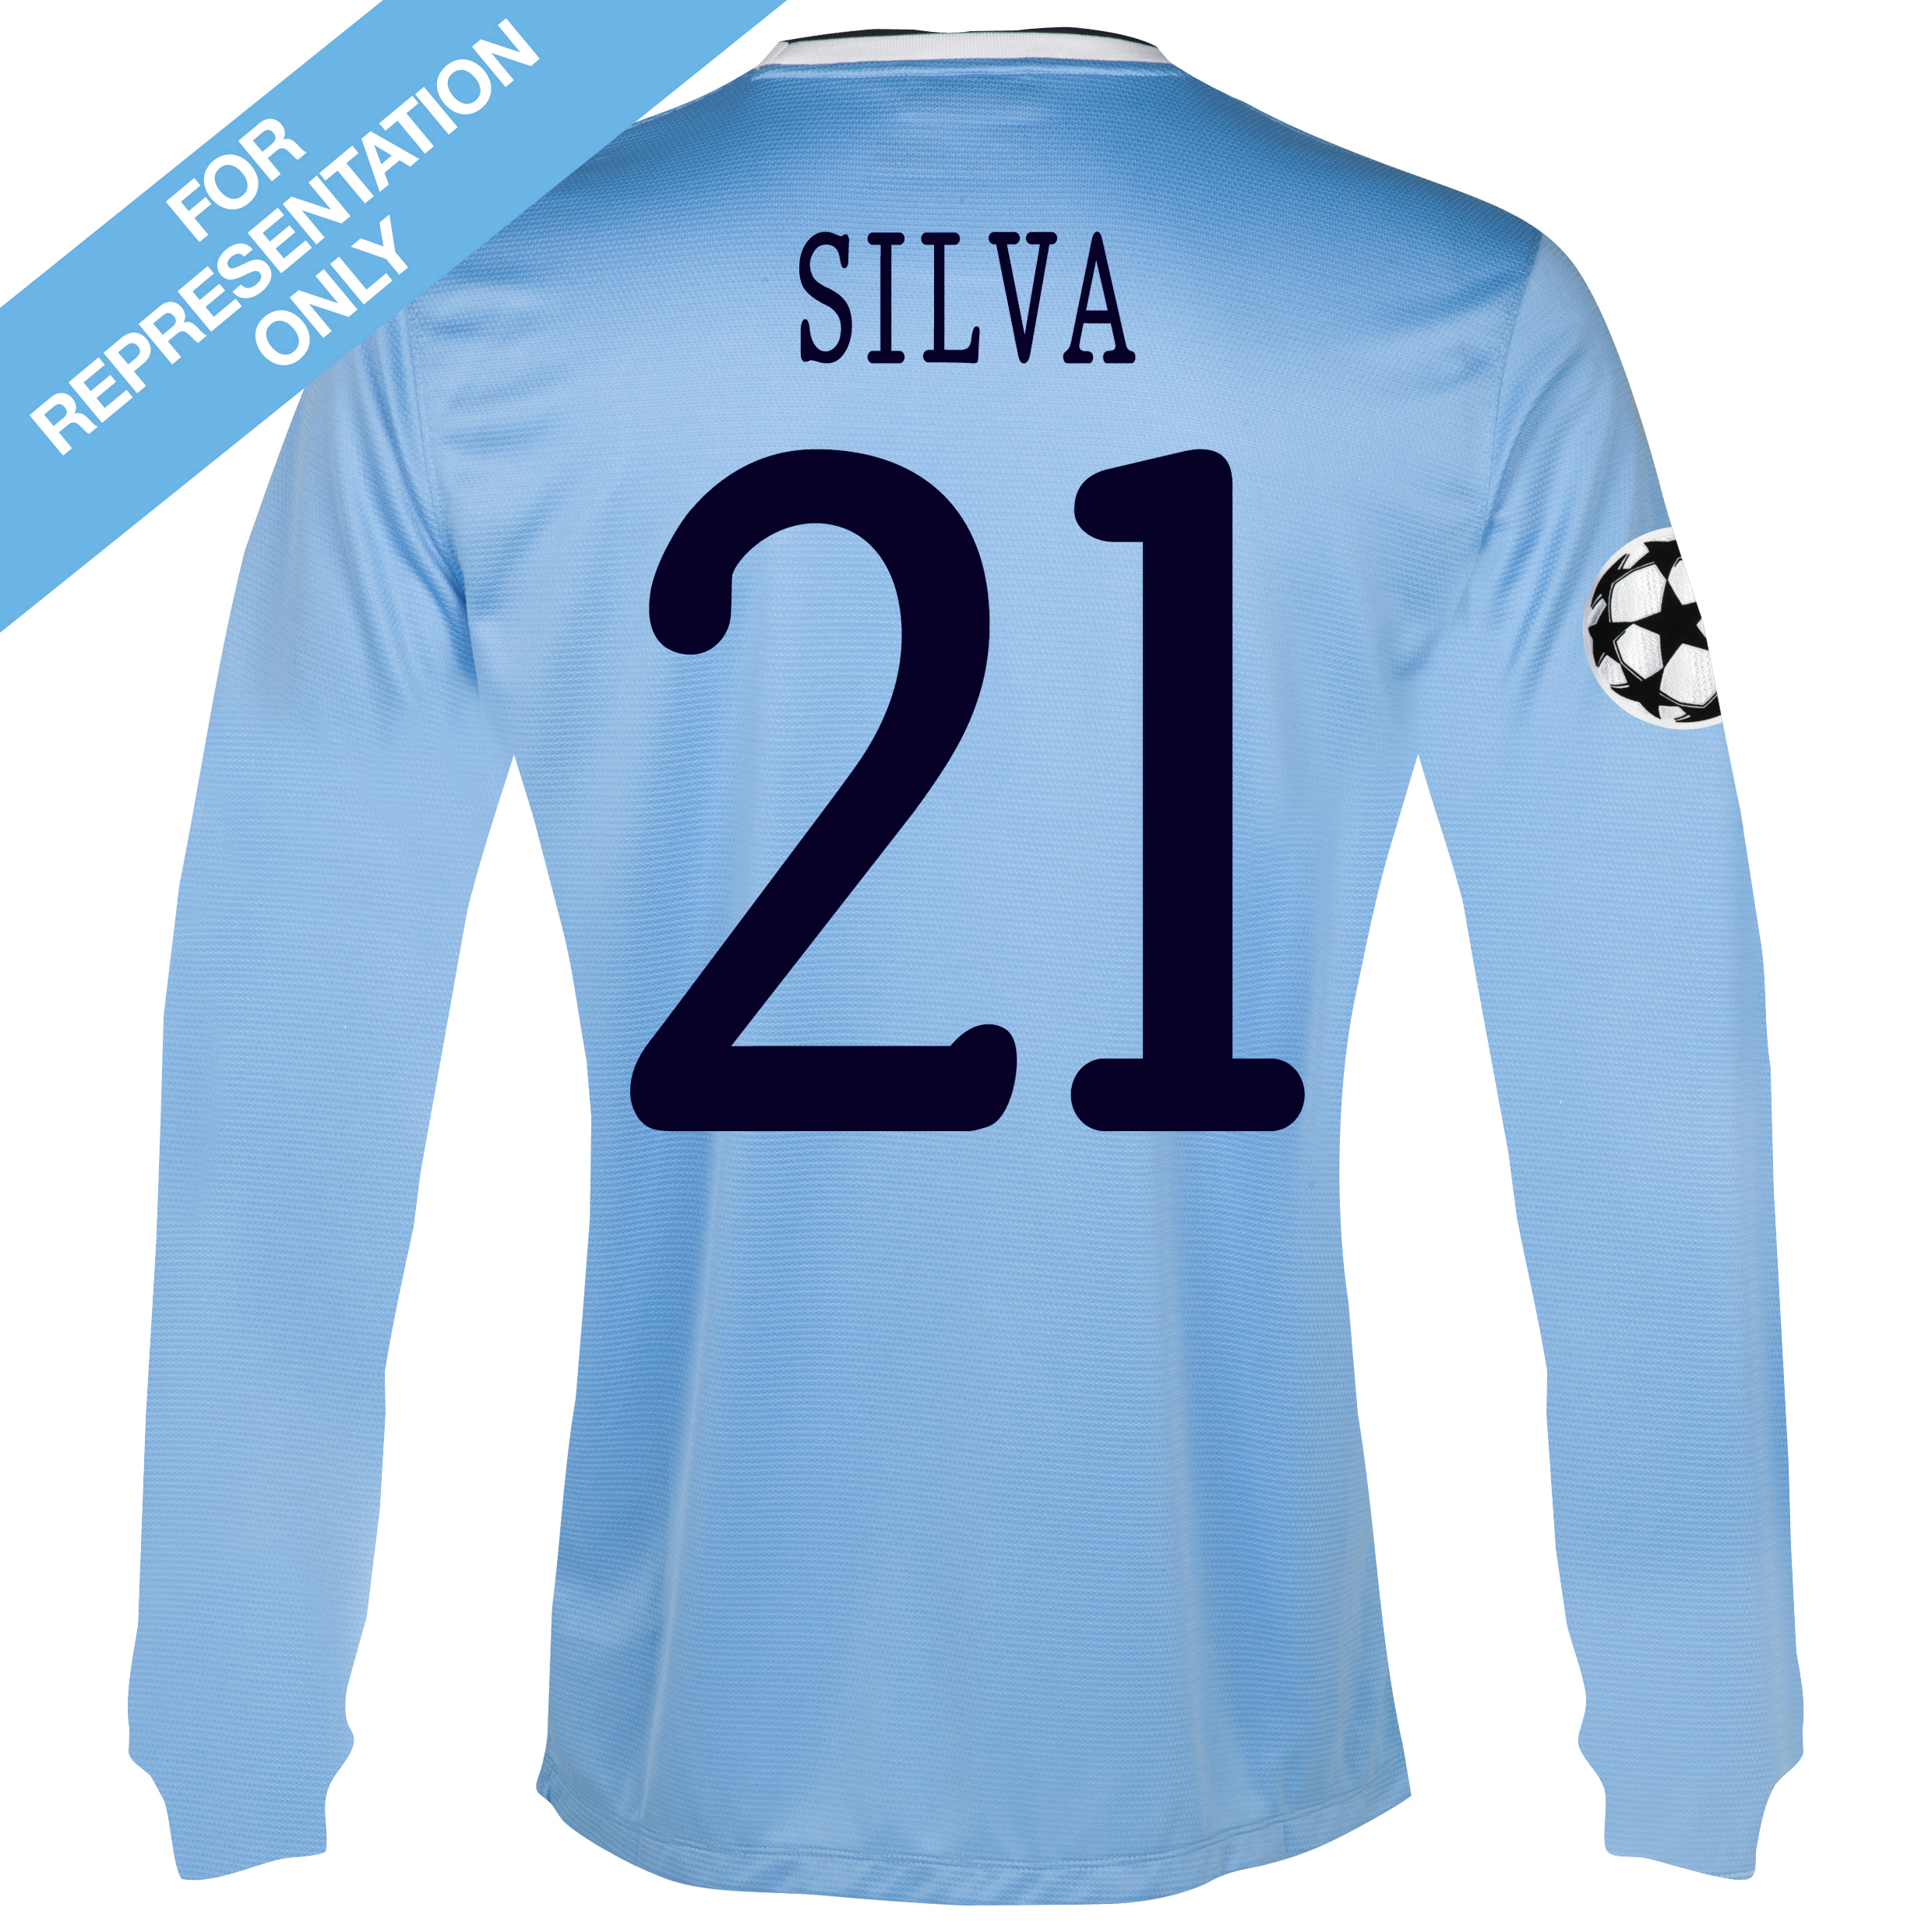 Manchester City UEFA Champions League Home Shirt 2013/14 - Long Sleeved - Junior with Silva 21 printing